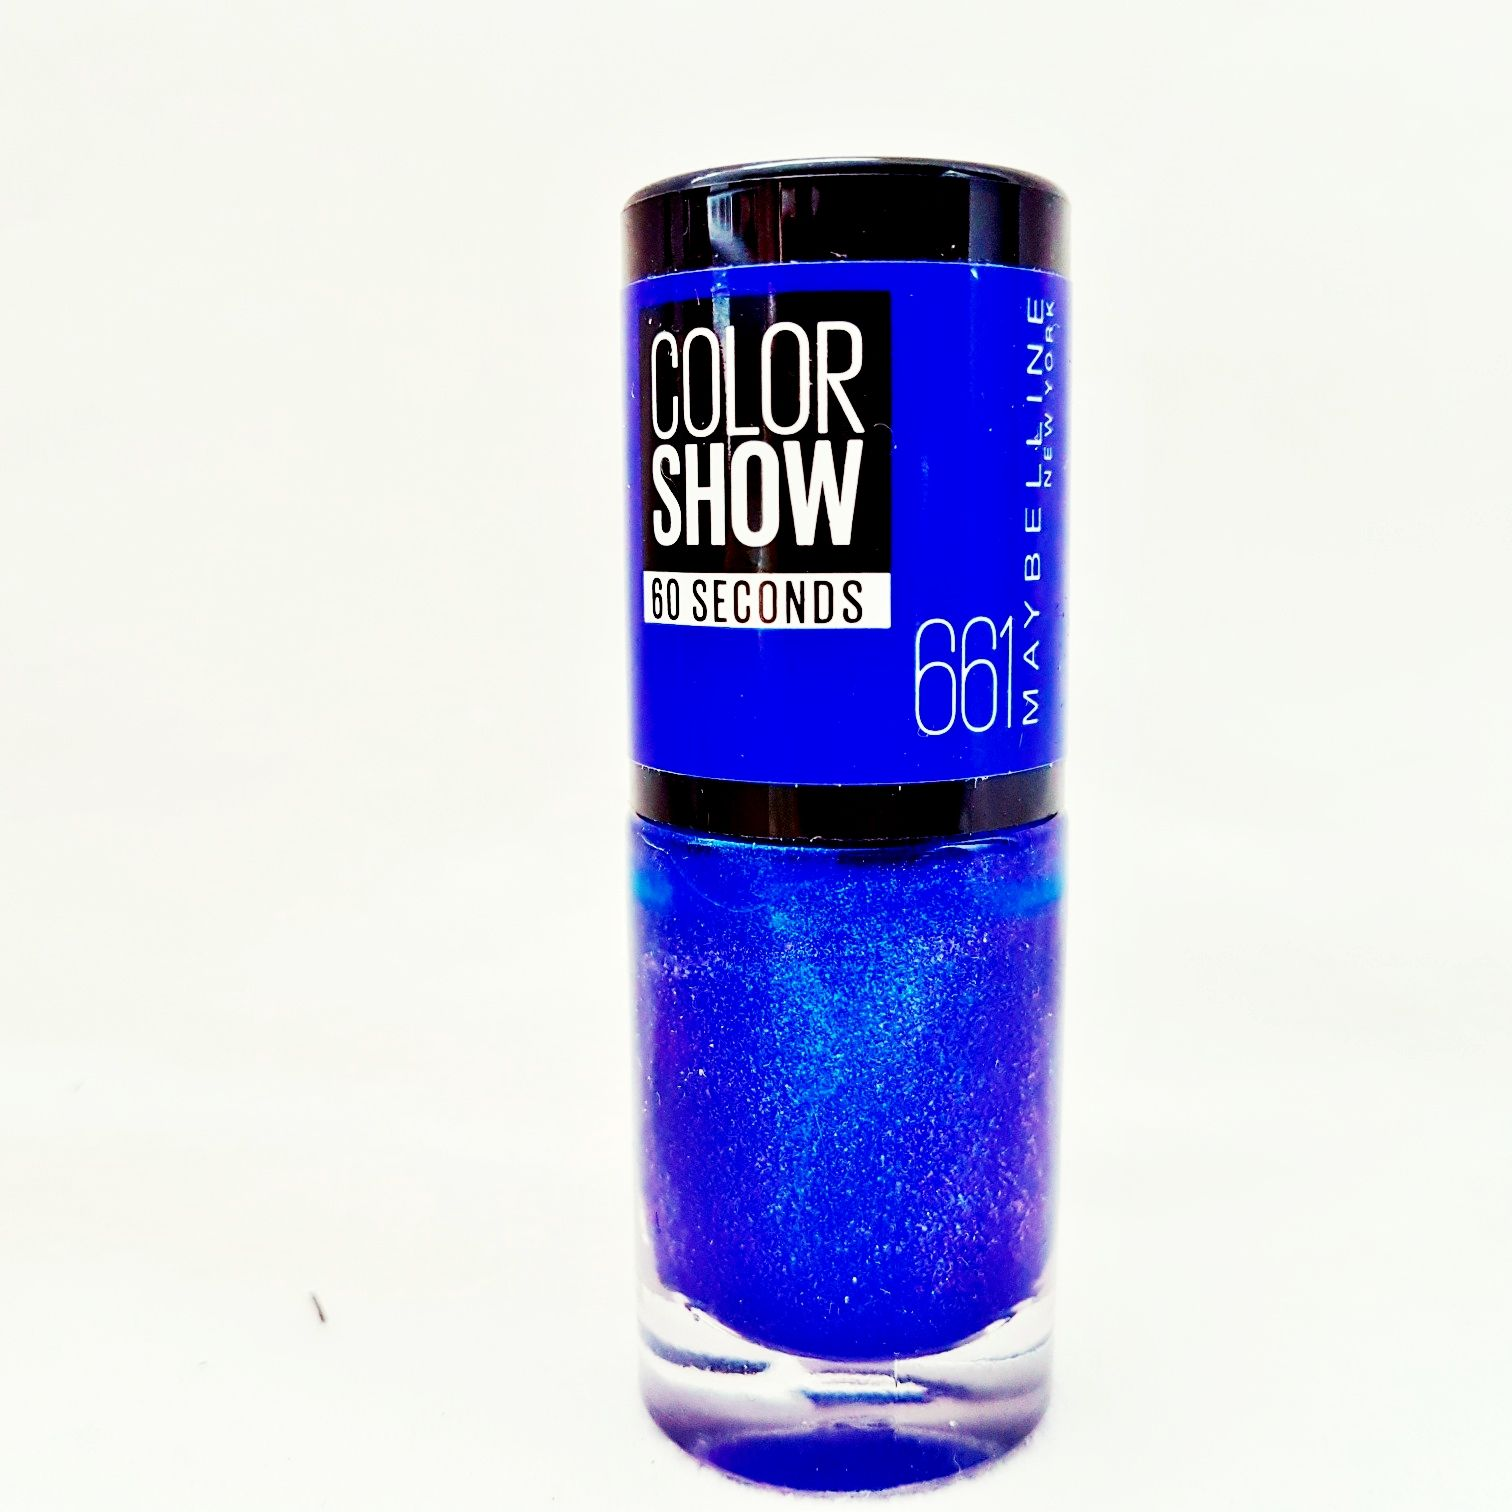 Maybelline New York Color Show Ocean blue